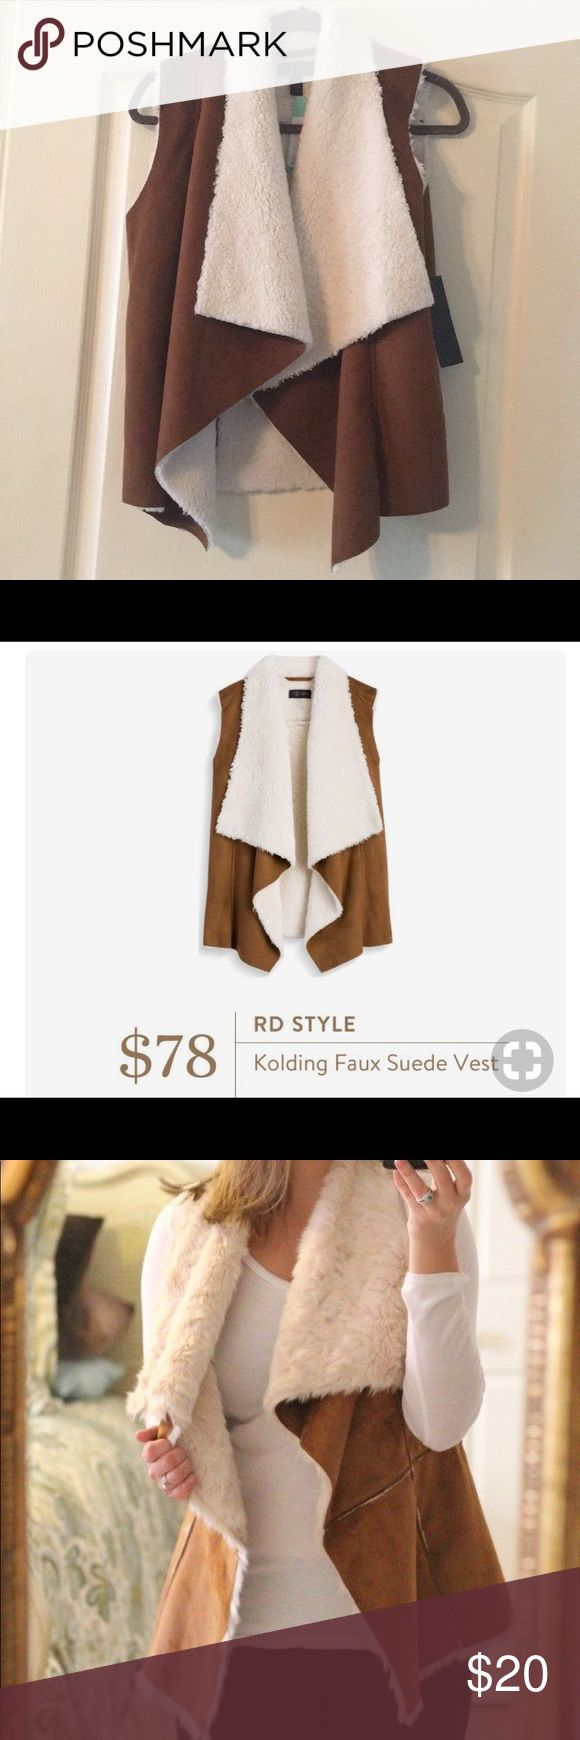 RD Style Kolding Faux Suede Vest Versatile vest that adds a stylish layer over any basic top. Soft, cozy and fashionable!  Great neutral tan suede and shearling color that goes with everything. RD Style Jackets & Coats Vests